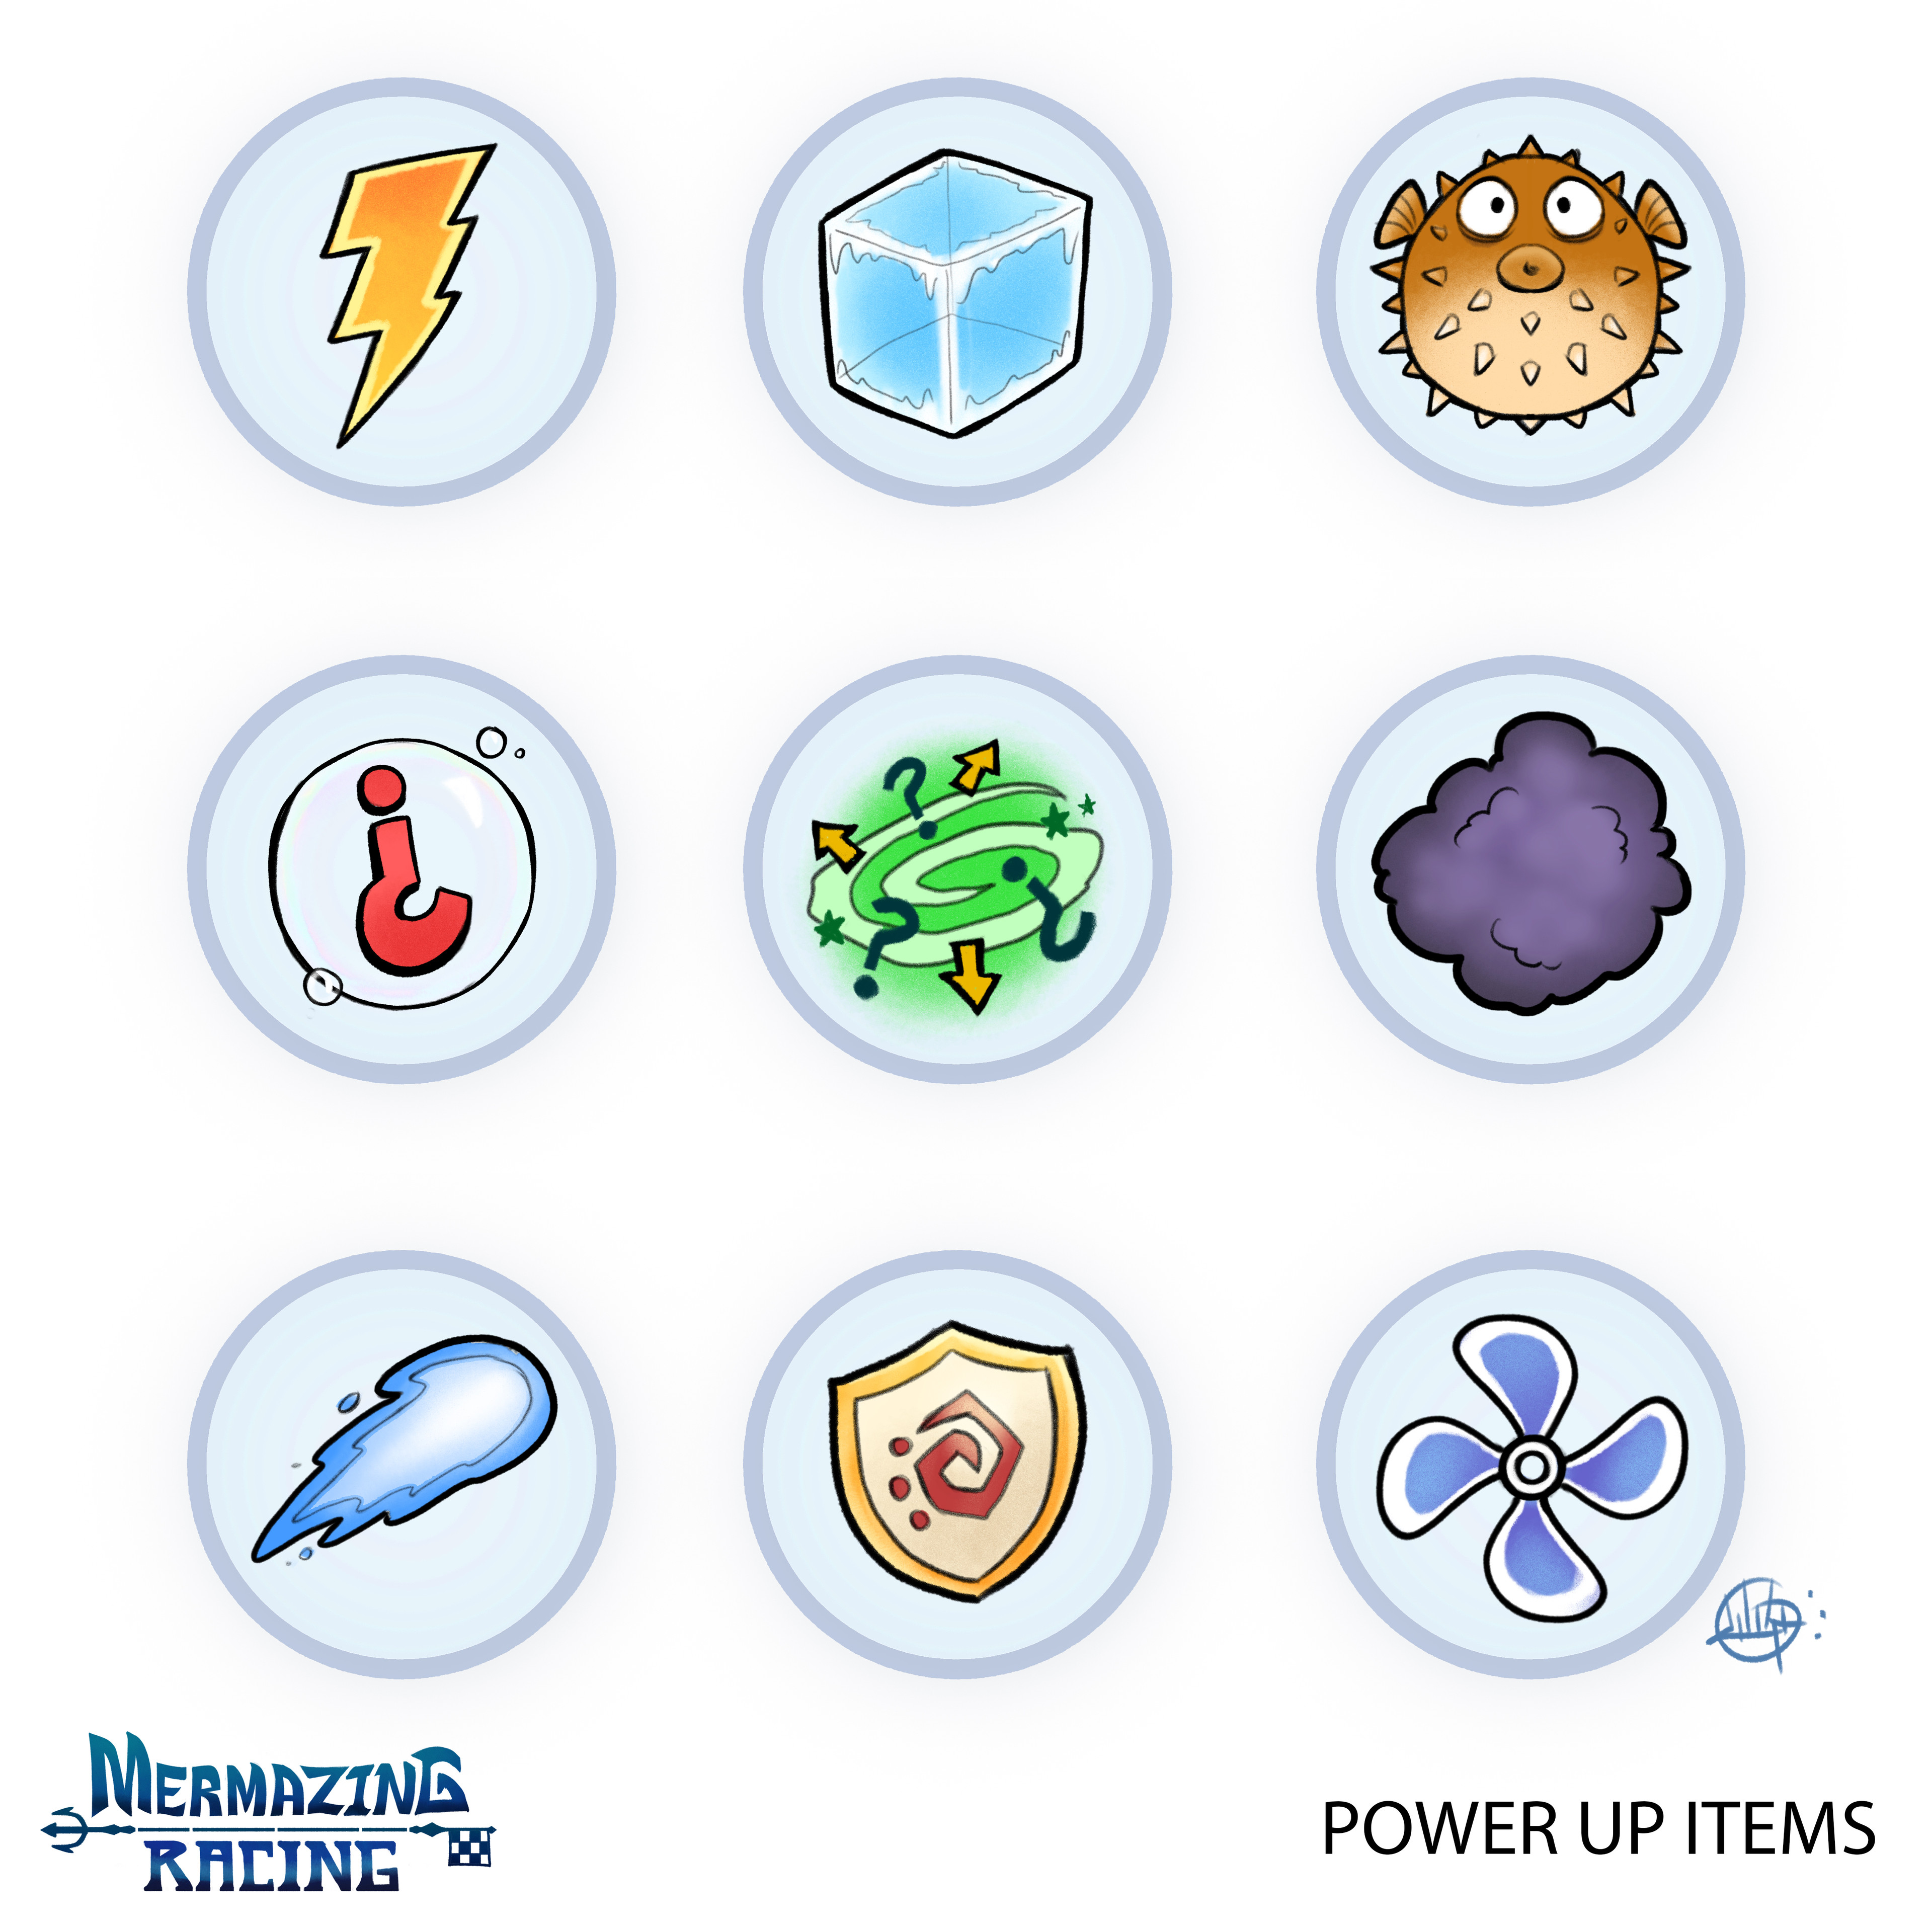 Power Up Items